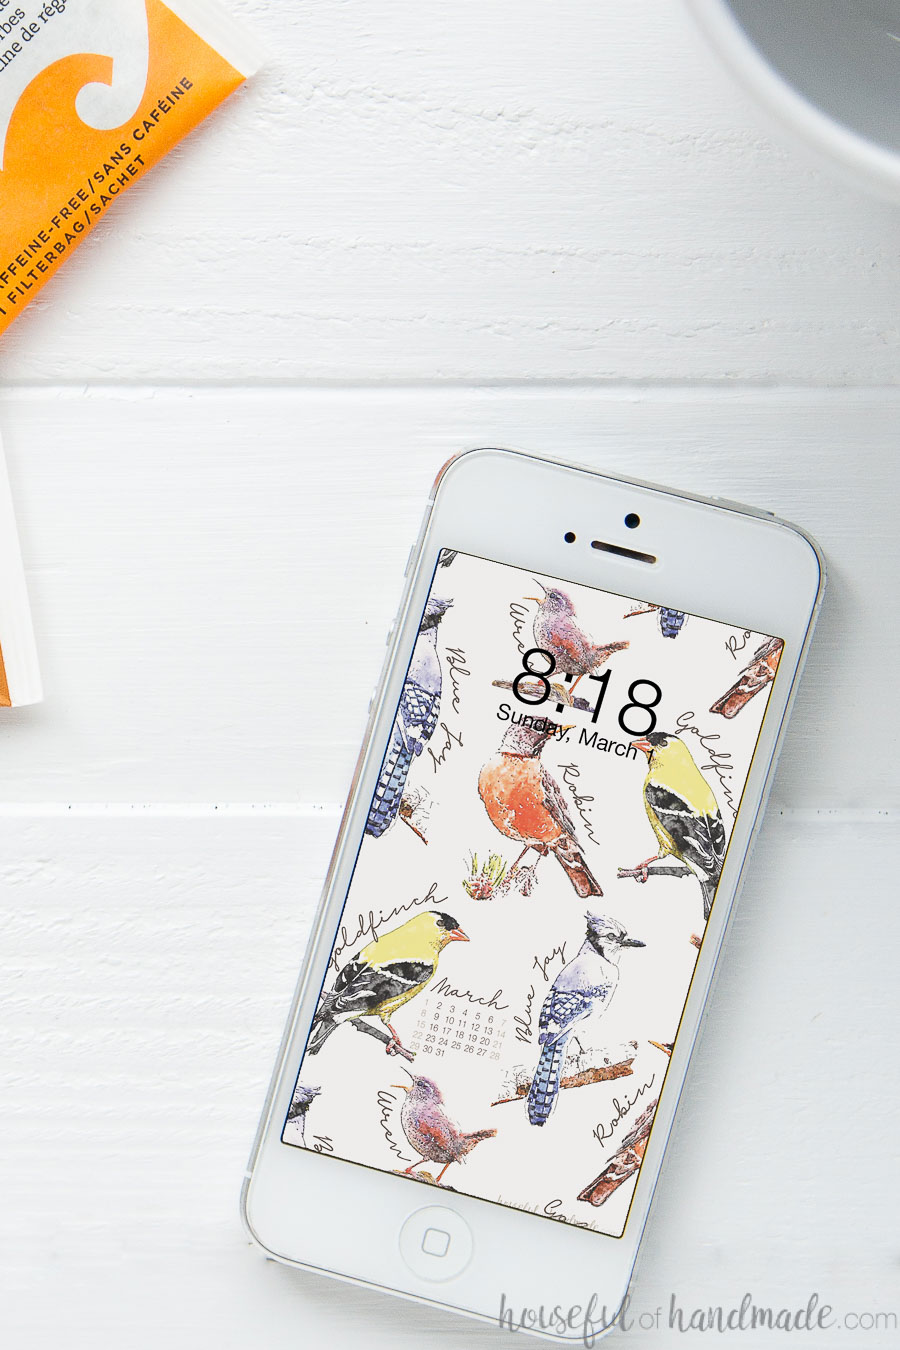 White iPhone with bird sketches wallpaper on the home screen.